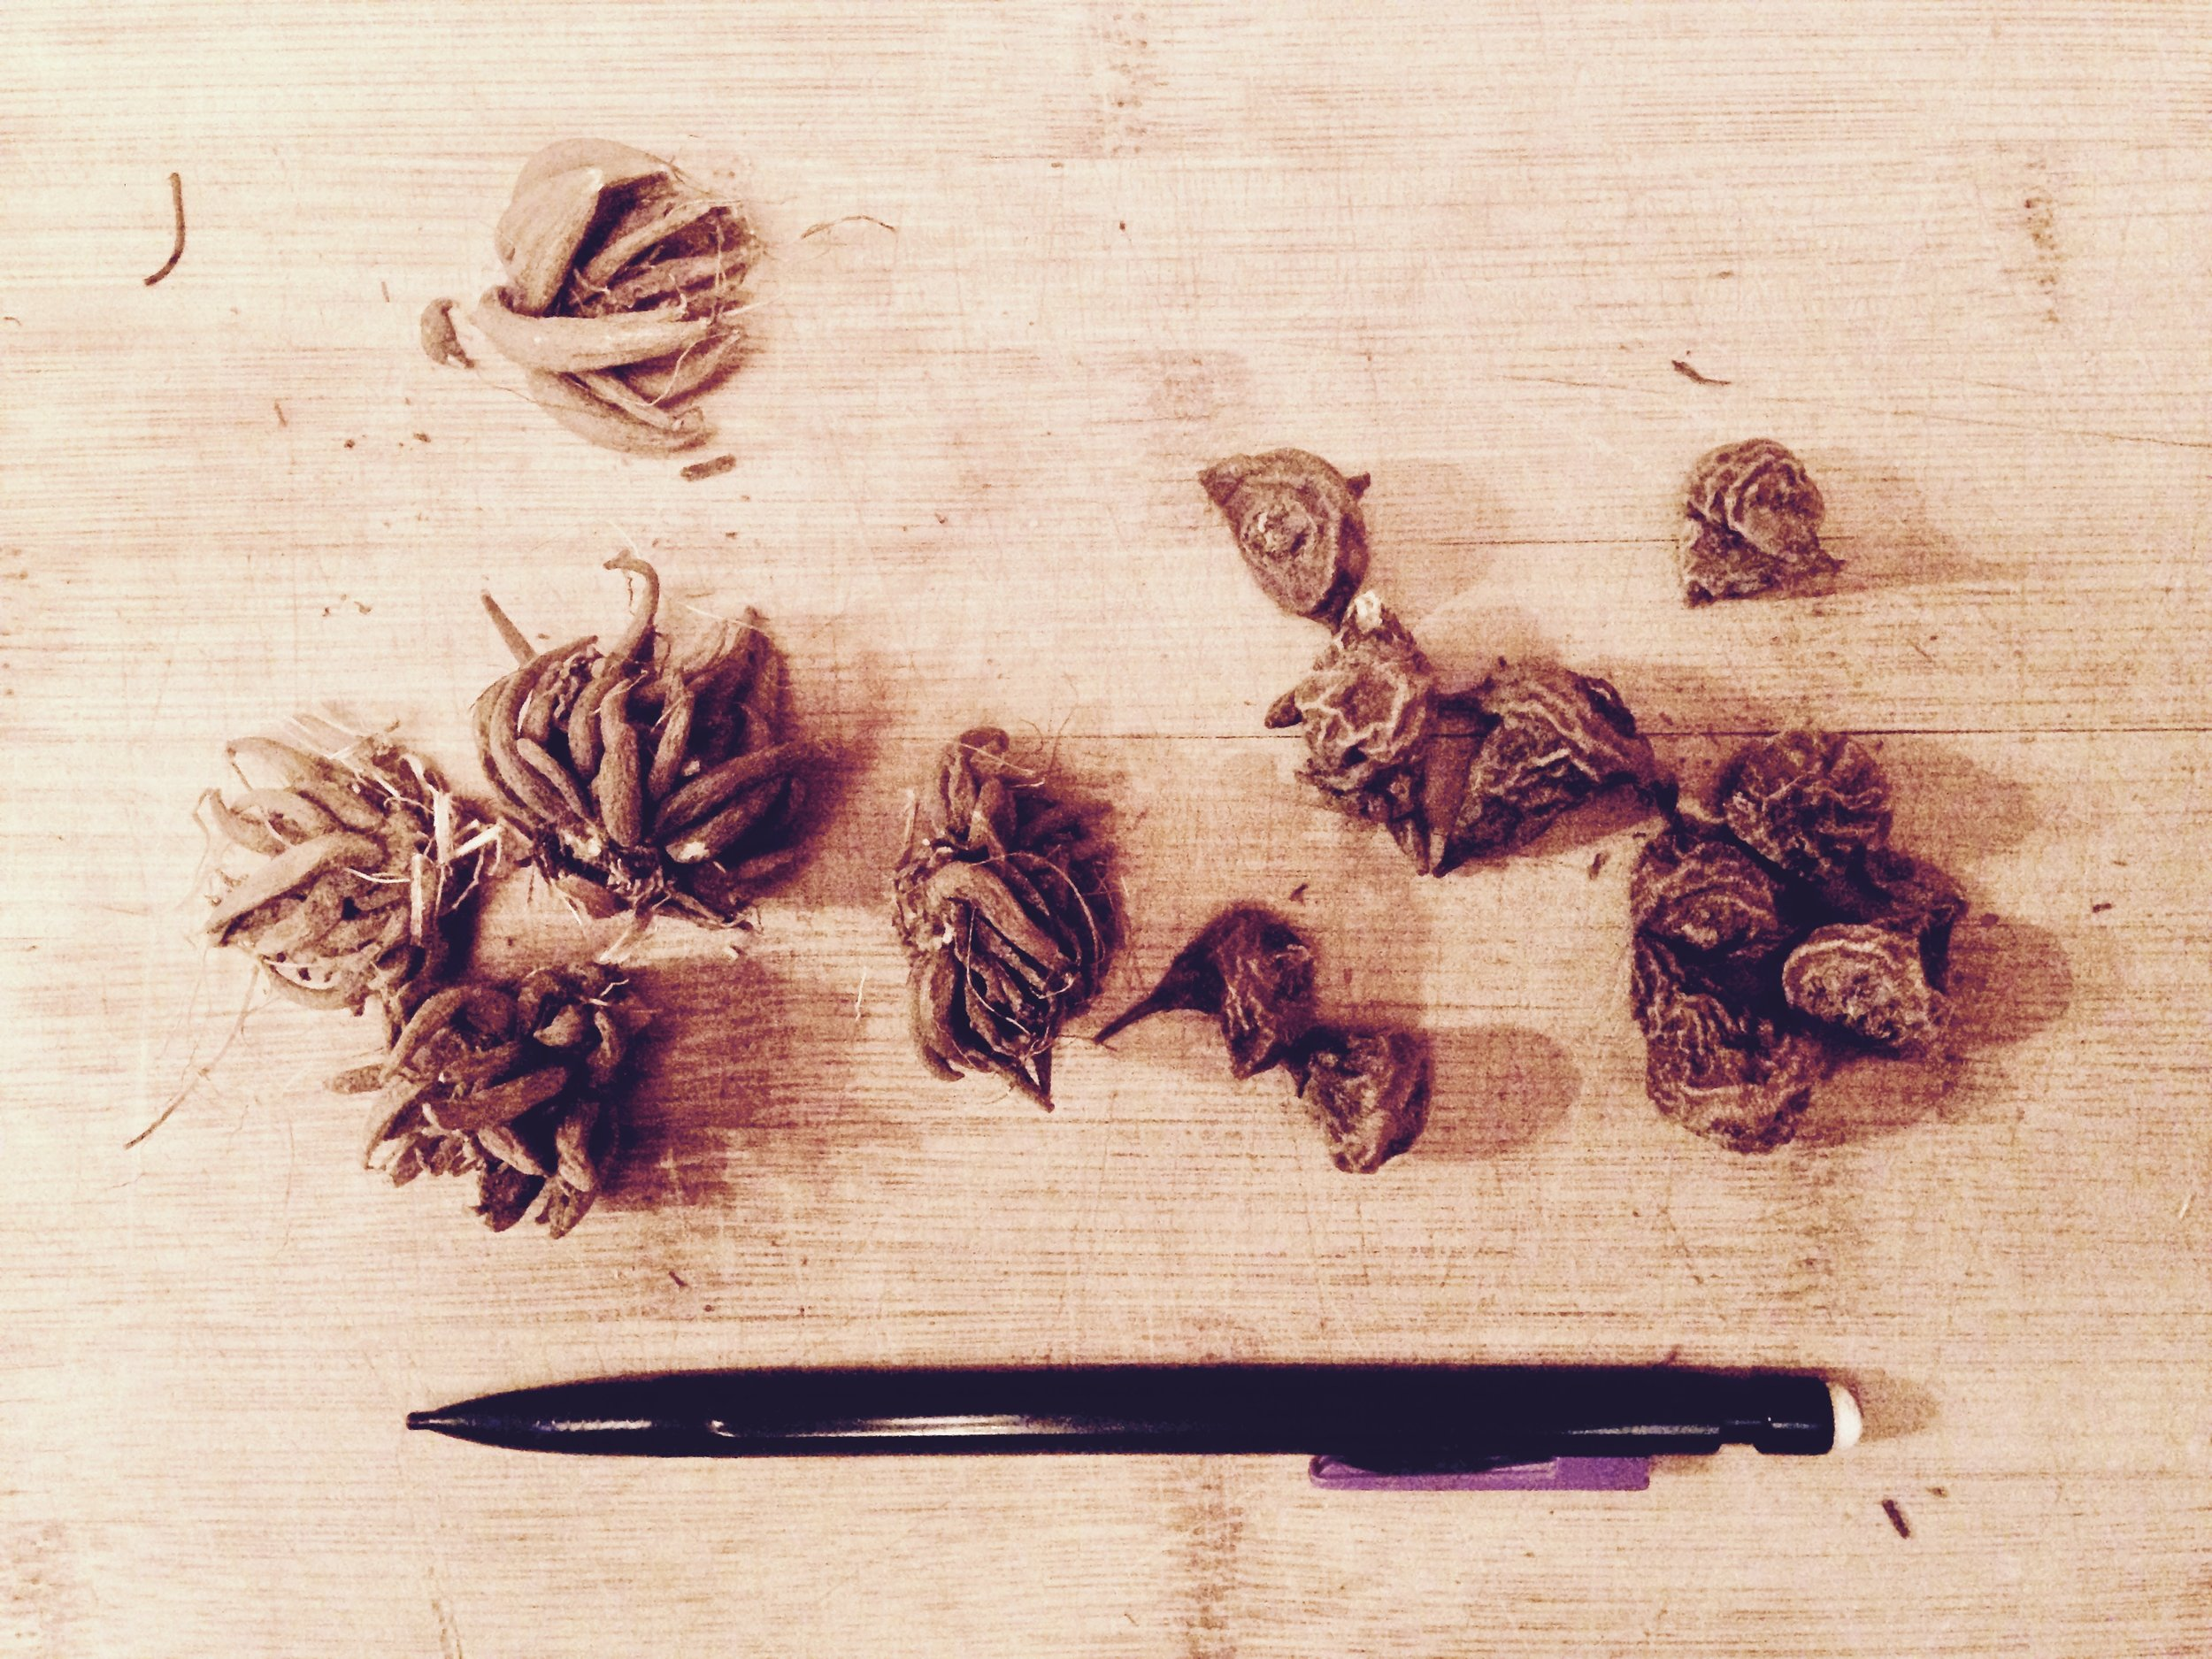 Ranunculus (left) and anemone corms (right) before being planted.